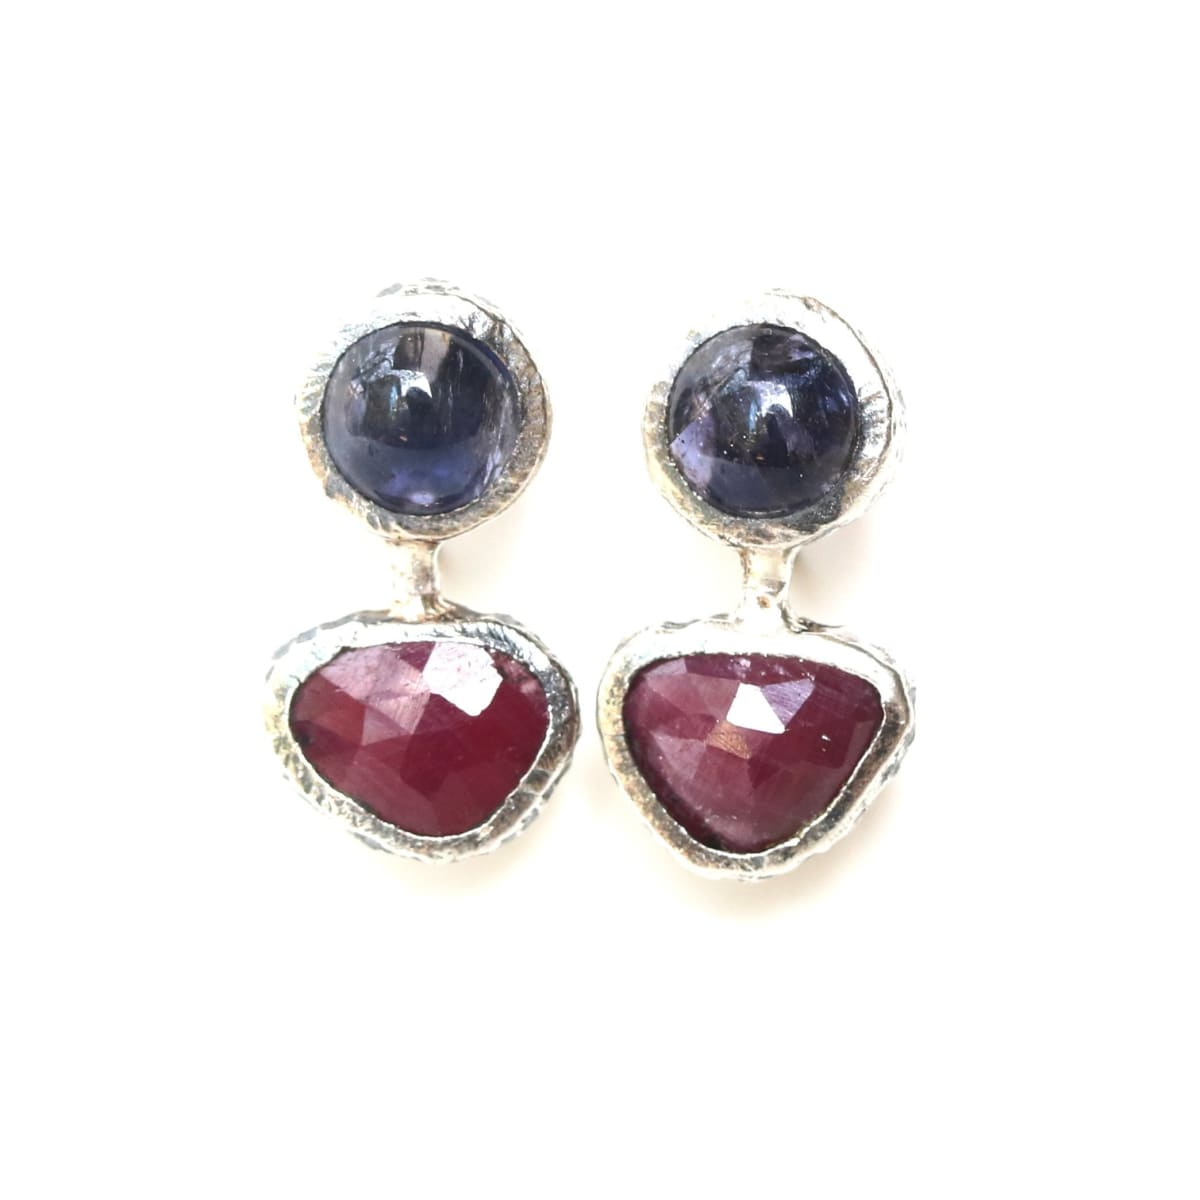 Triangle red ruby and round iolite stud earrings in silver bezel setting with sterling post backing - by Metal Studio Jewelry